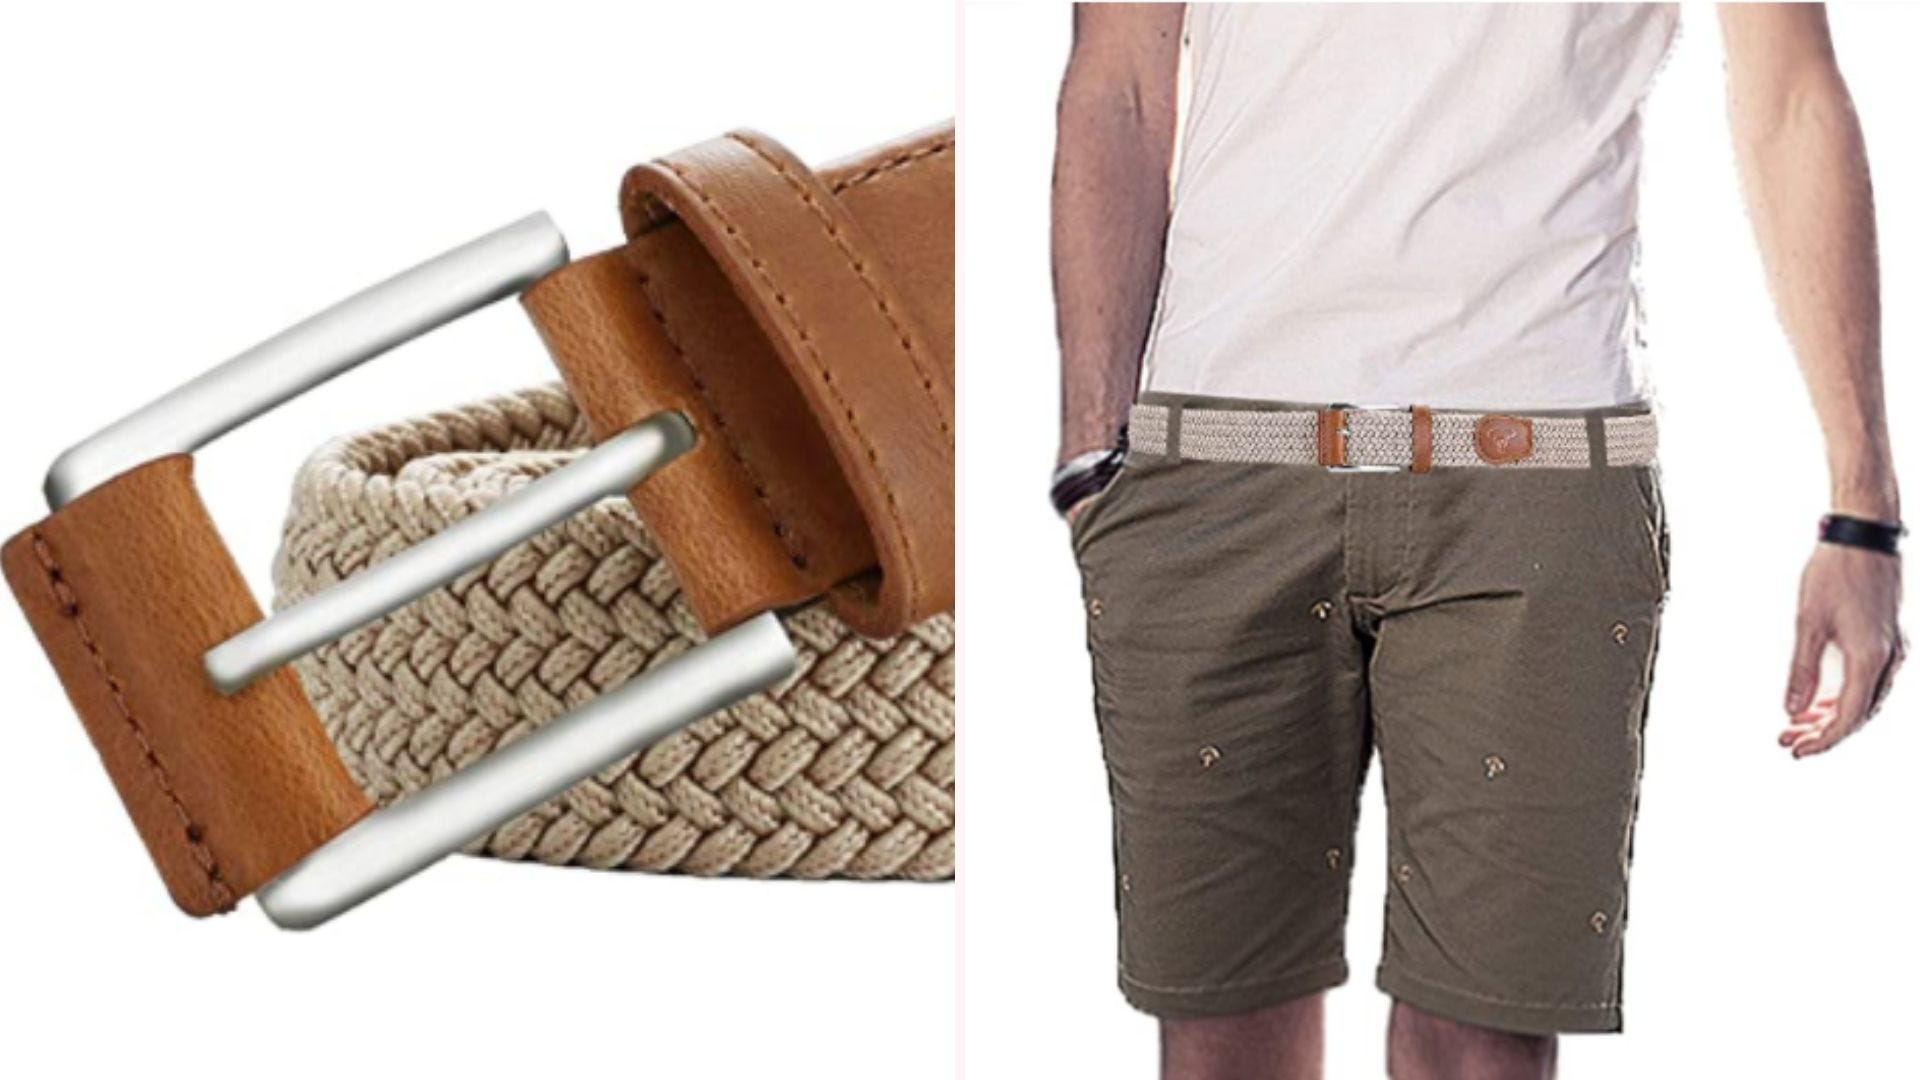 On the left, a closeup view of a silver belt buckle that is attached to a beige-colored belt made from interwoven fabric strips. On the right, a model in a white top and khaki shorts wears the belt.